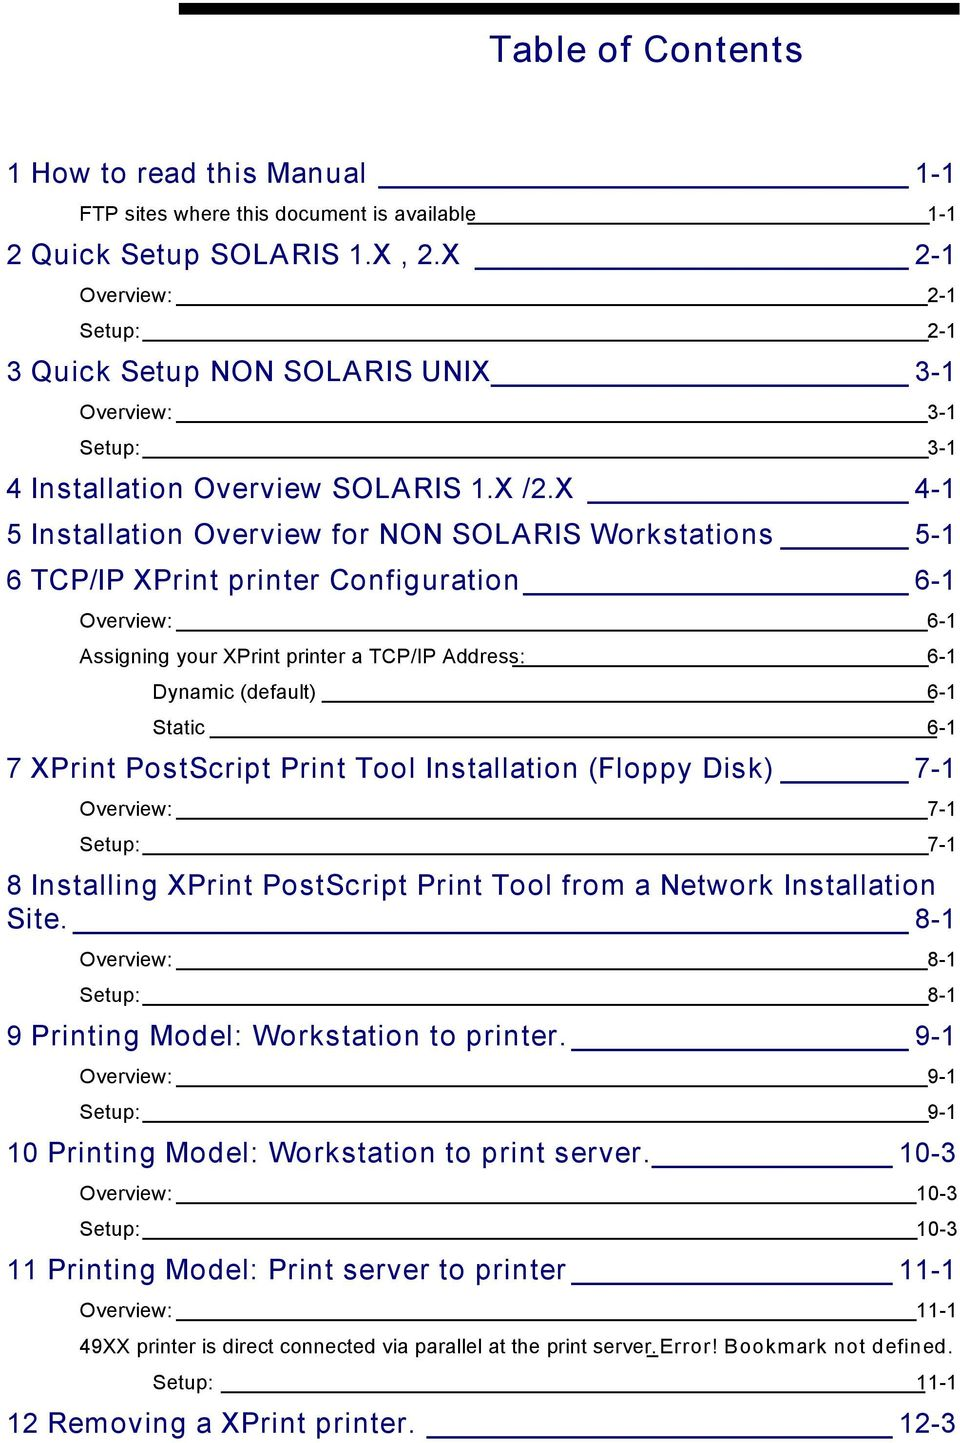 X 4-1 5 Installation Overview for NON SOLARIS Workstations 5-1 6 TCP/IP XPrint printer Configuration 6-1 Overview: 6-1 Assigning your XPrint printer a TCP/IP Address: 6-1 Dynamic (default) 6-1 Static